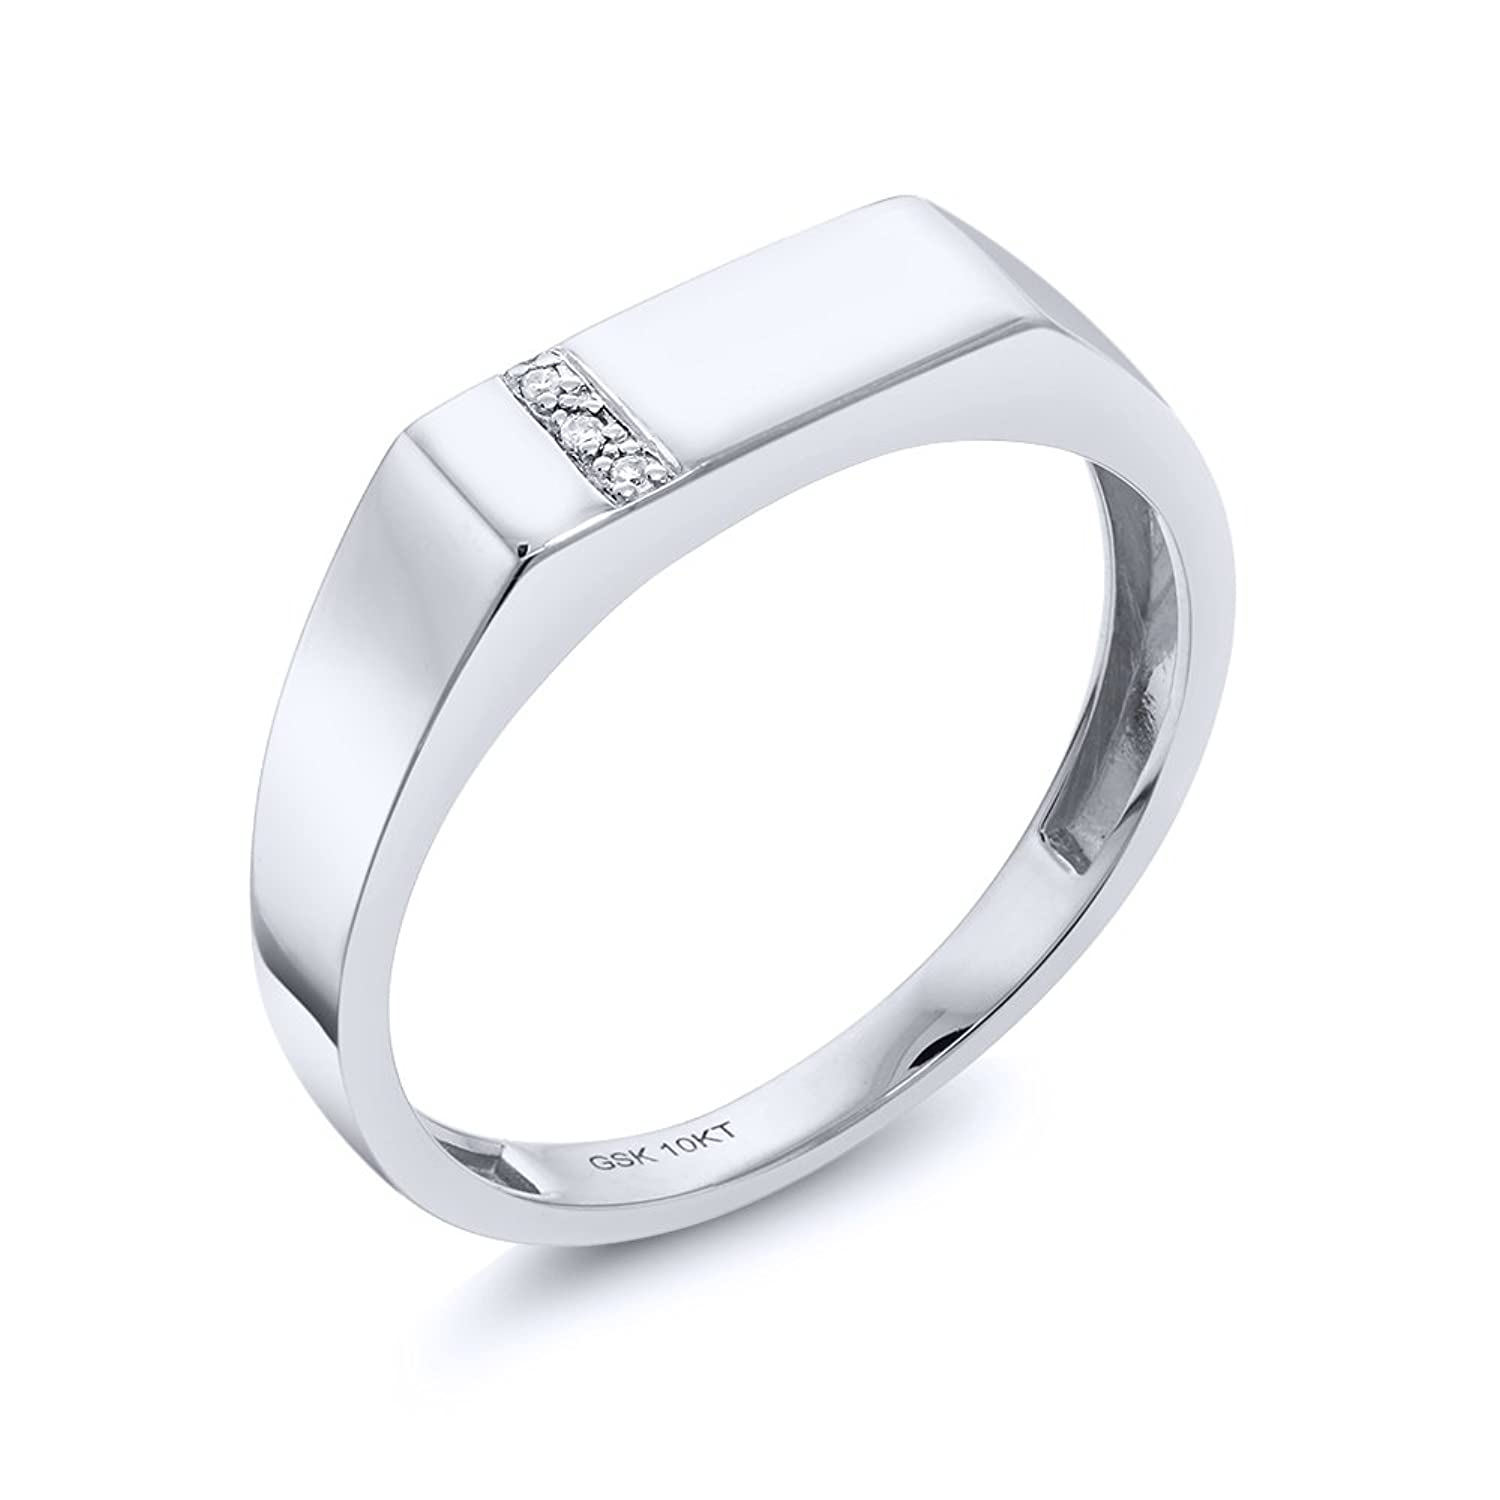 10K Solid White Gold Men's White Diamond Wedding Anniversary Ring (Available in size 7, 8, 9, 10, 11, 12, 13)